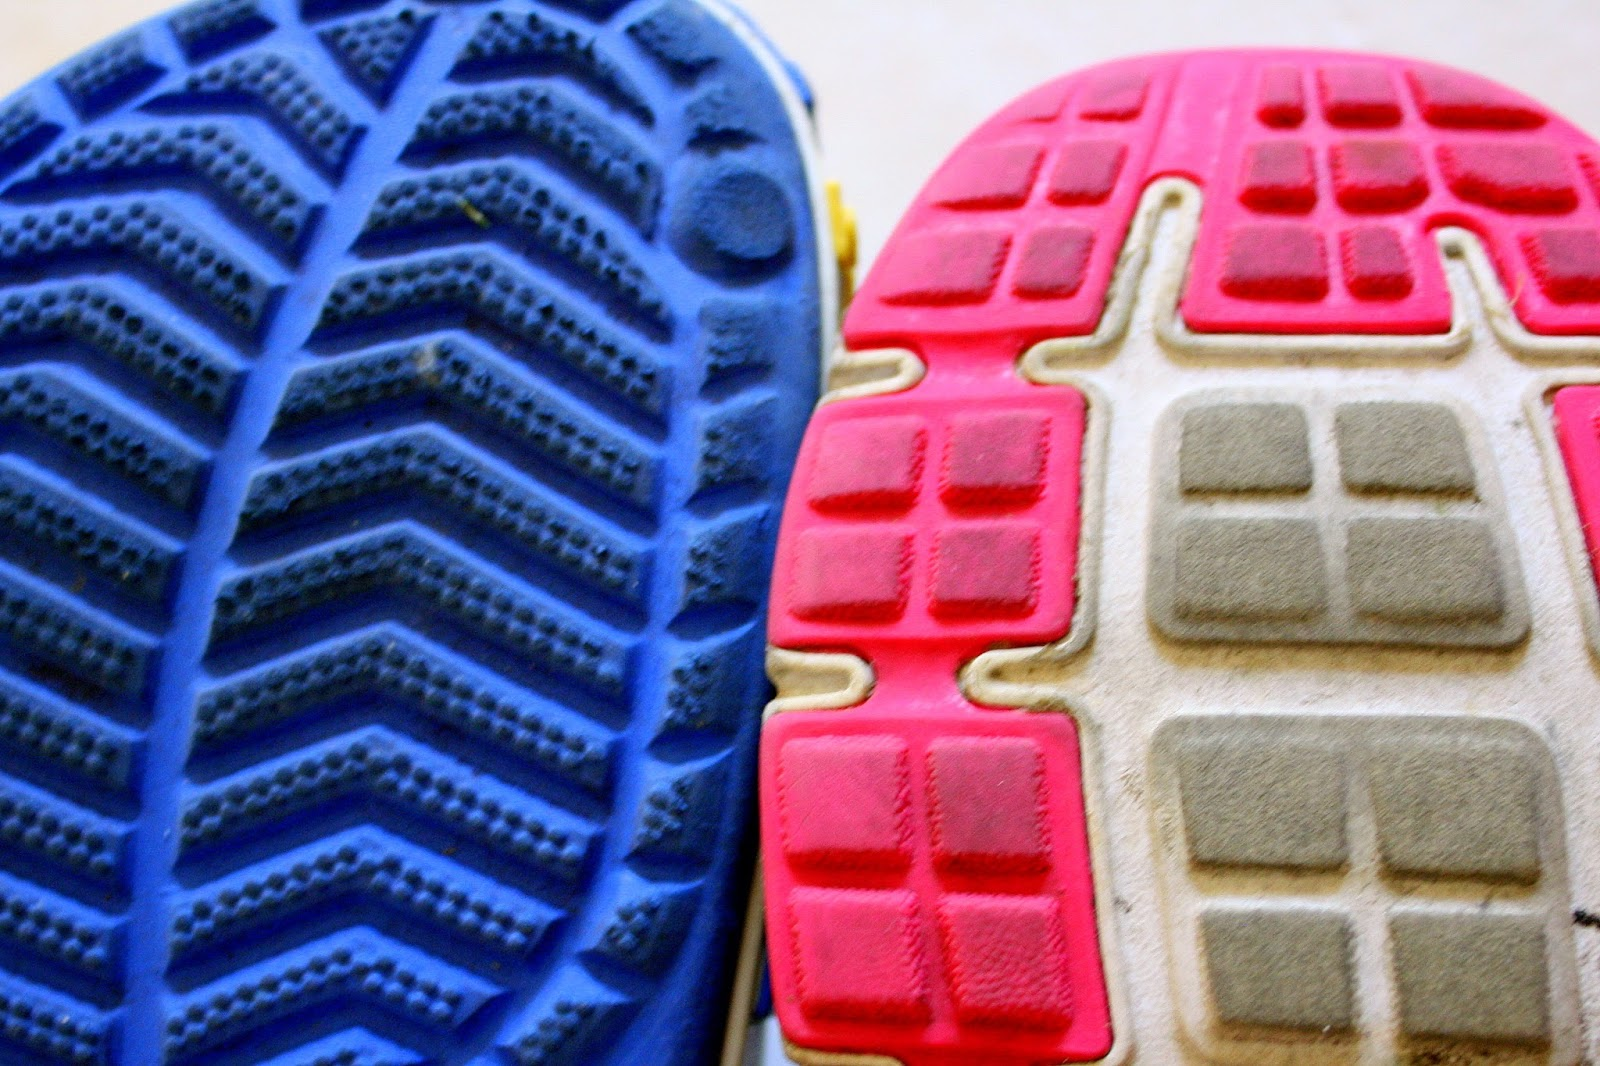 The Educators Spin On It Shoe Activities For Preschool Learning